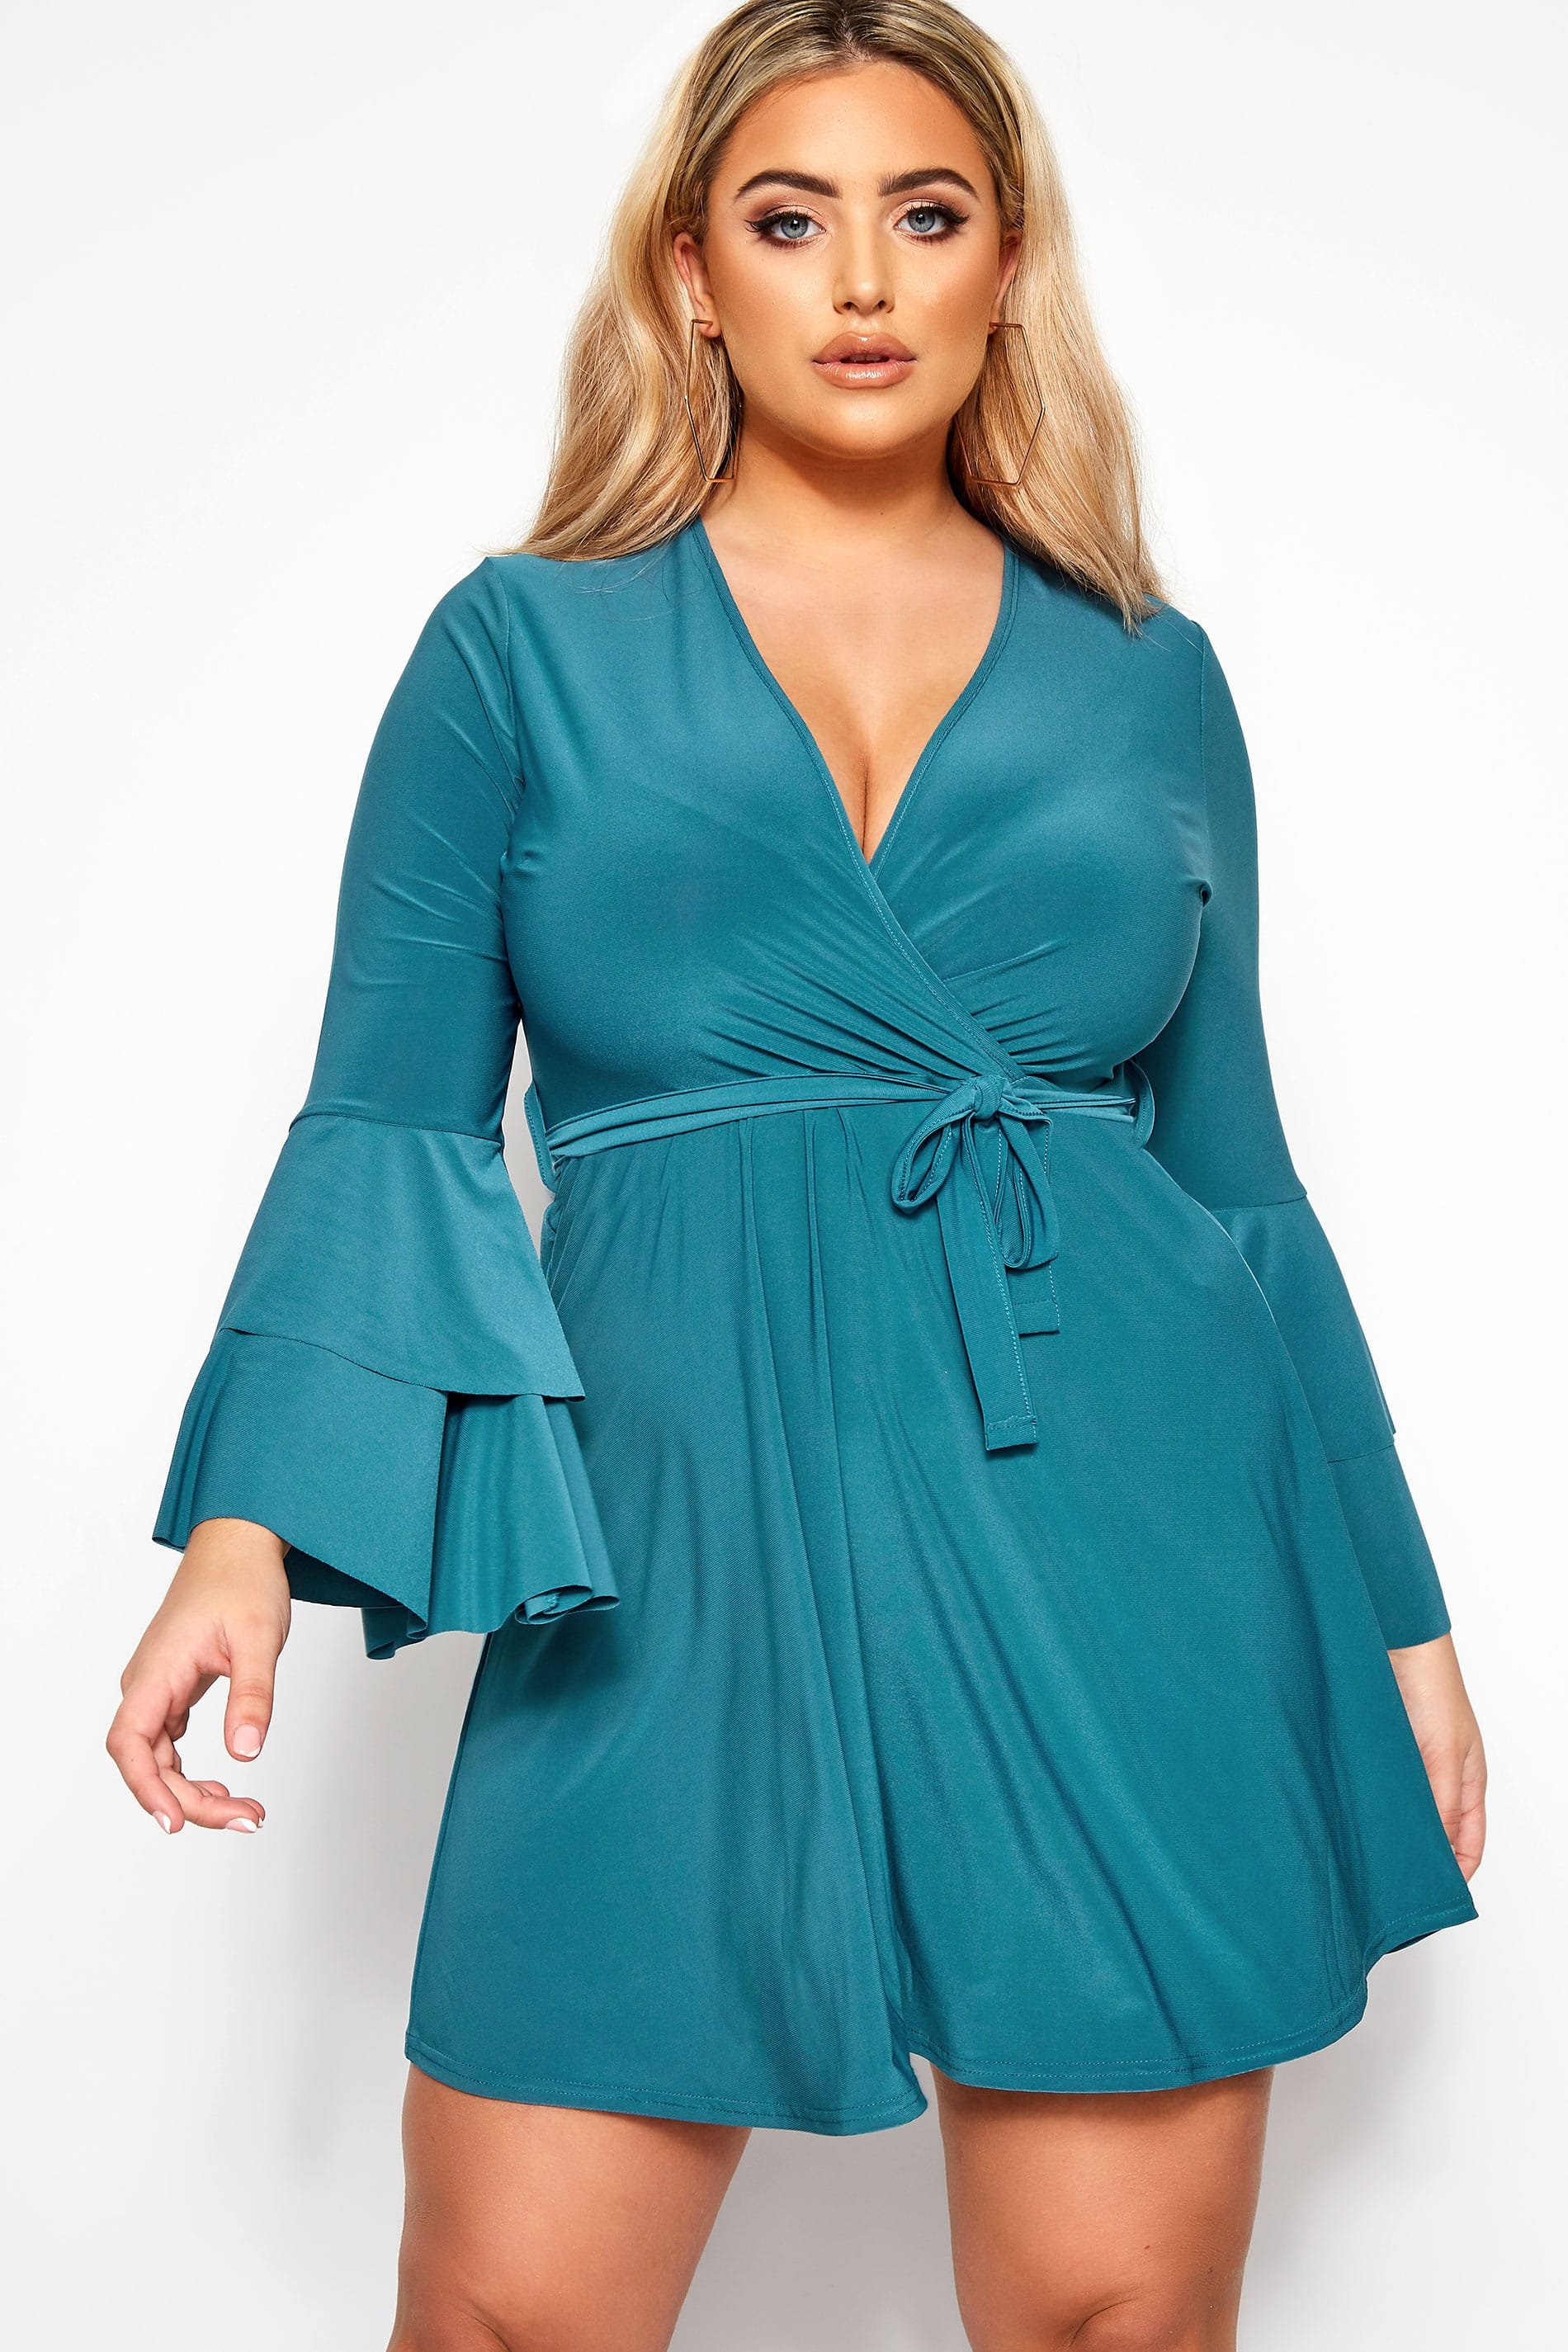 LIMITED COLLECTION Teal Blue Frill Sleeve Wrap Dress